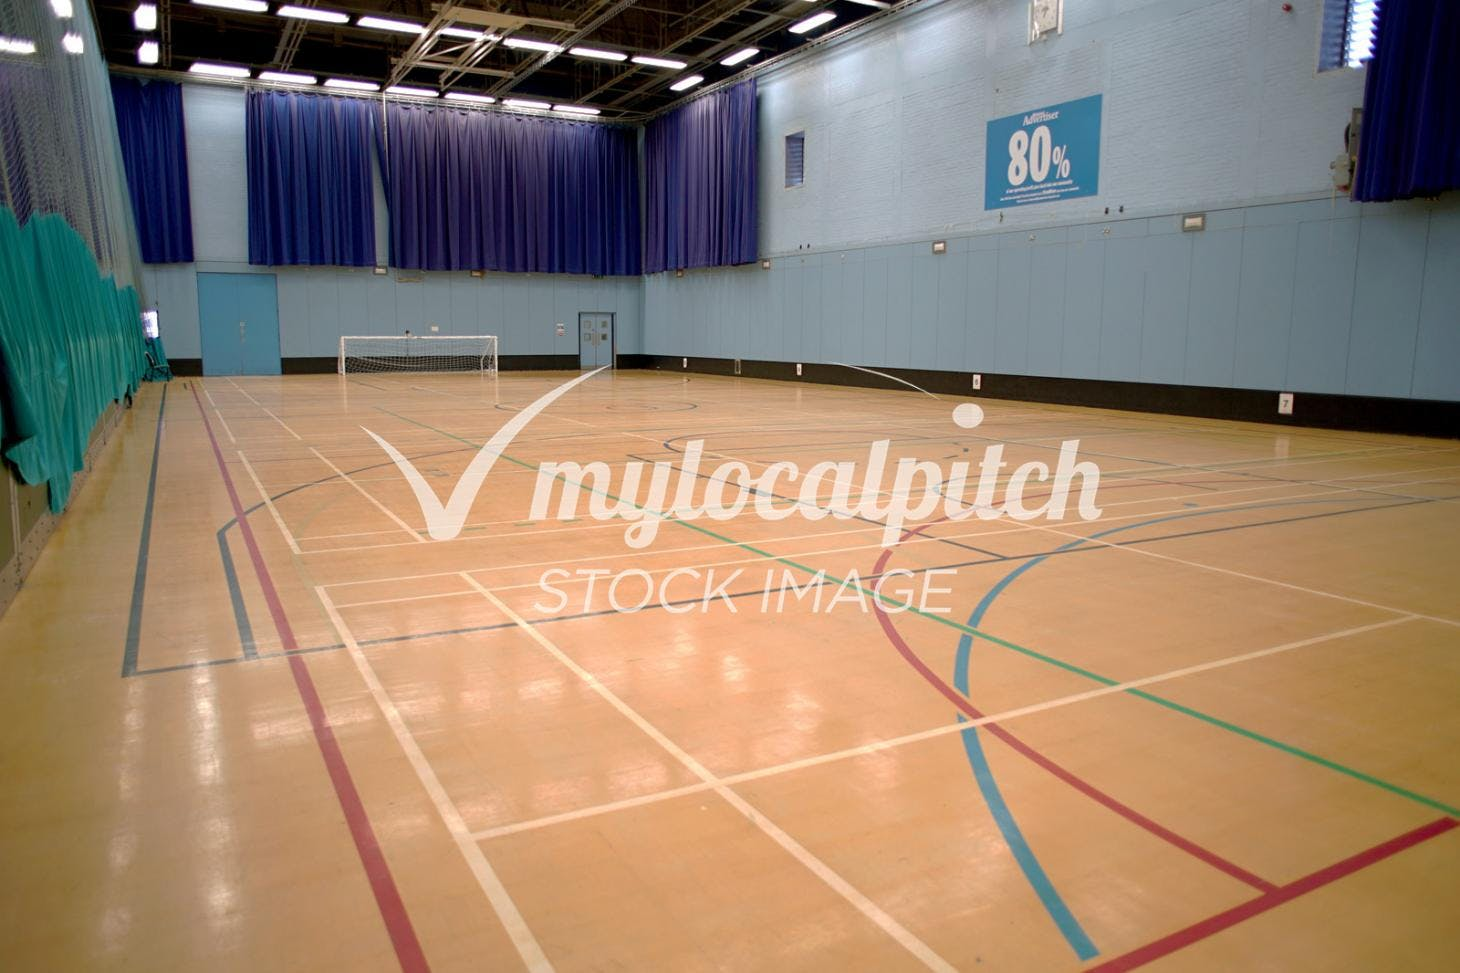 New Windsor Community Association 5 a side | Indoor football pitch